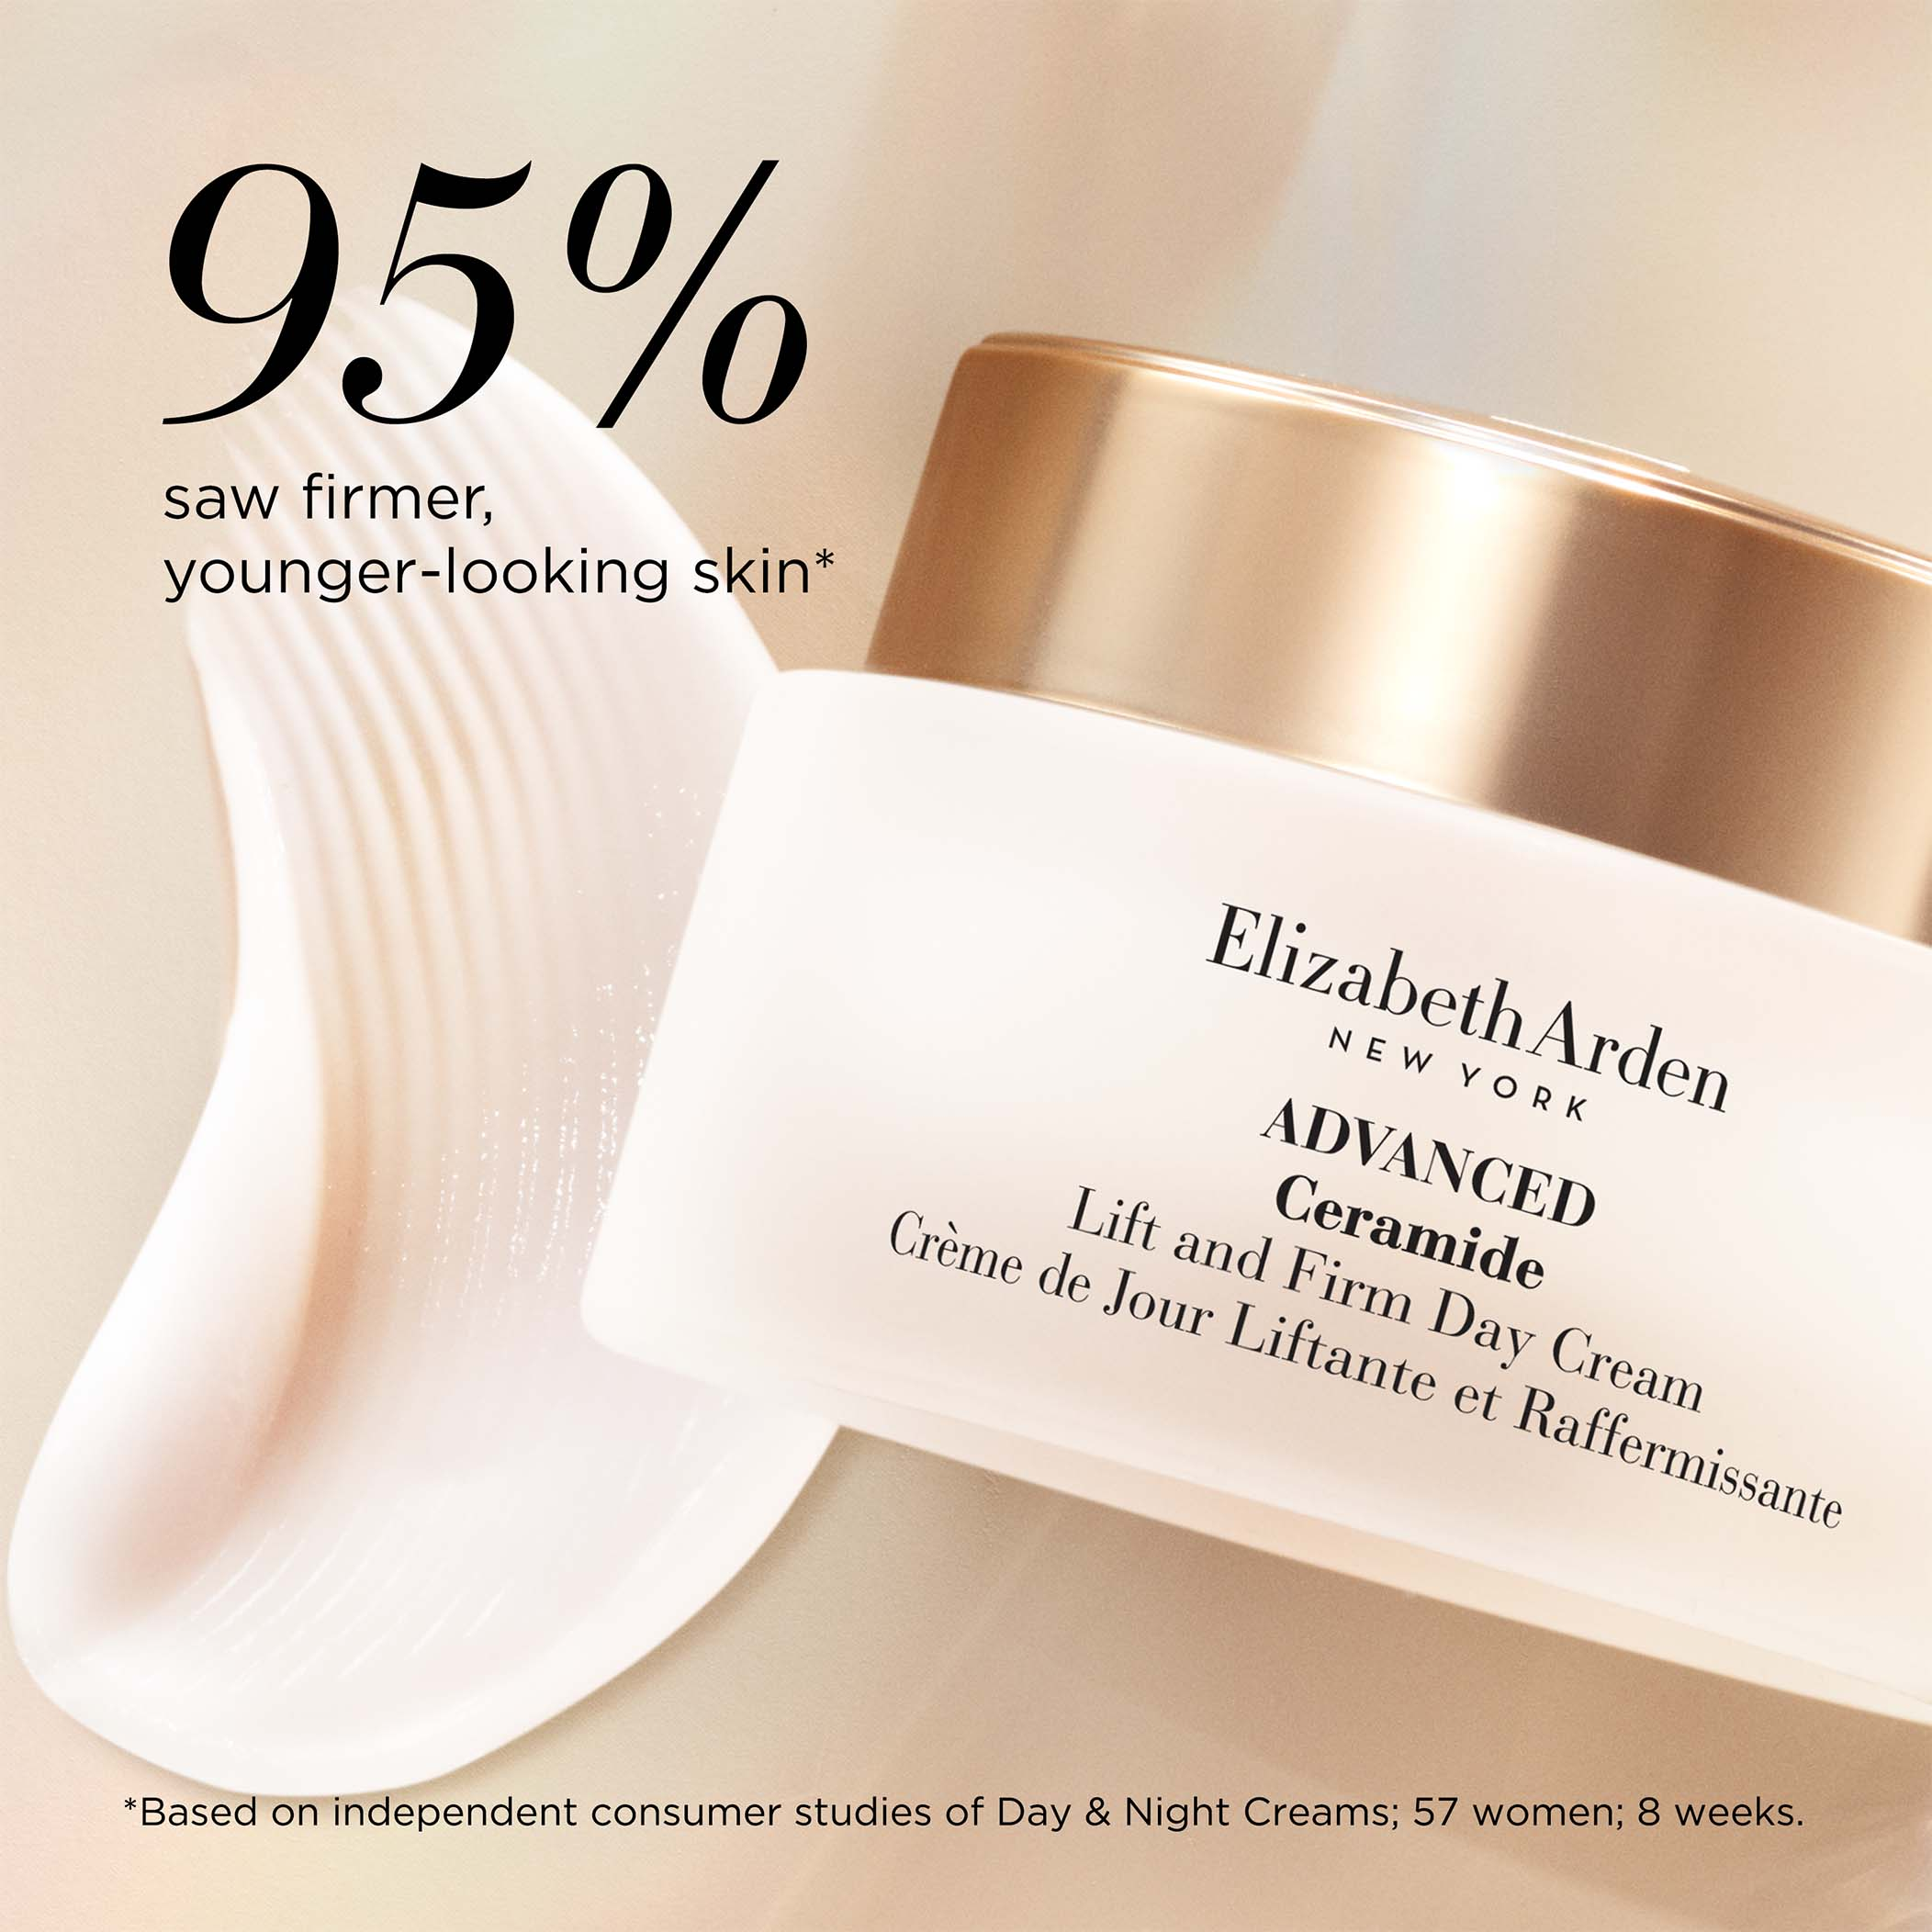 95% saw firmer, younger-looking skin based on independent consumer studies of Day and Night Creams, 57 women, 8 week.